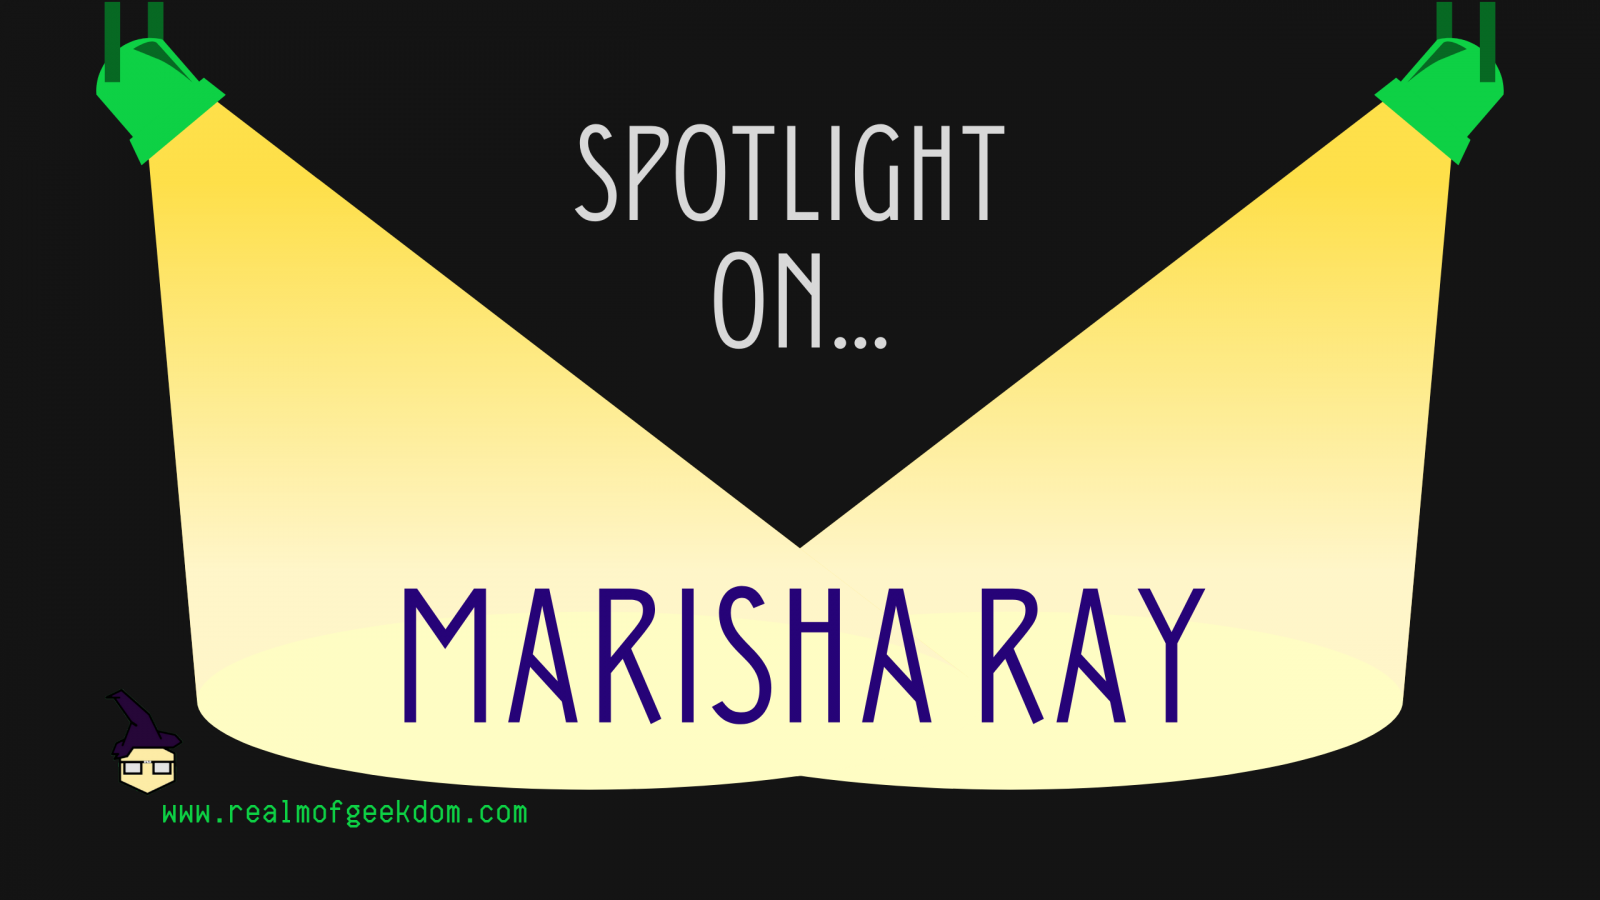 Spotlight On... Marisha Ray